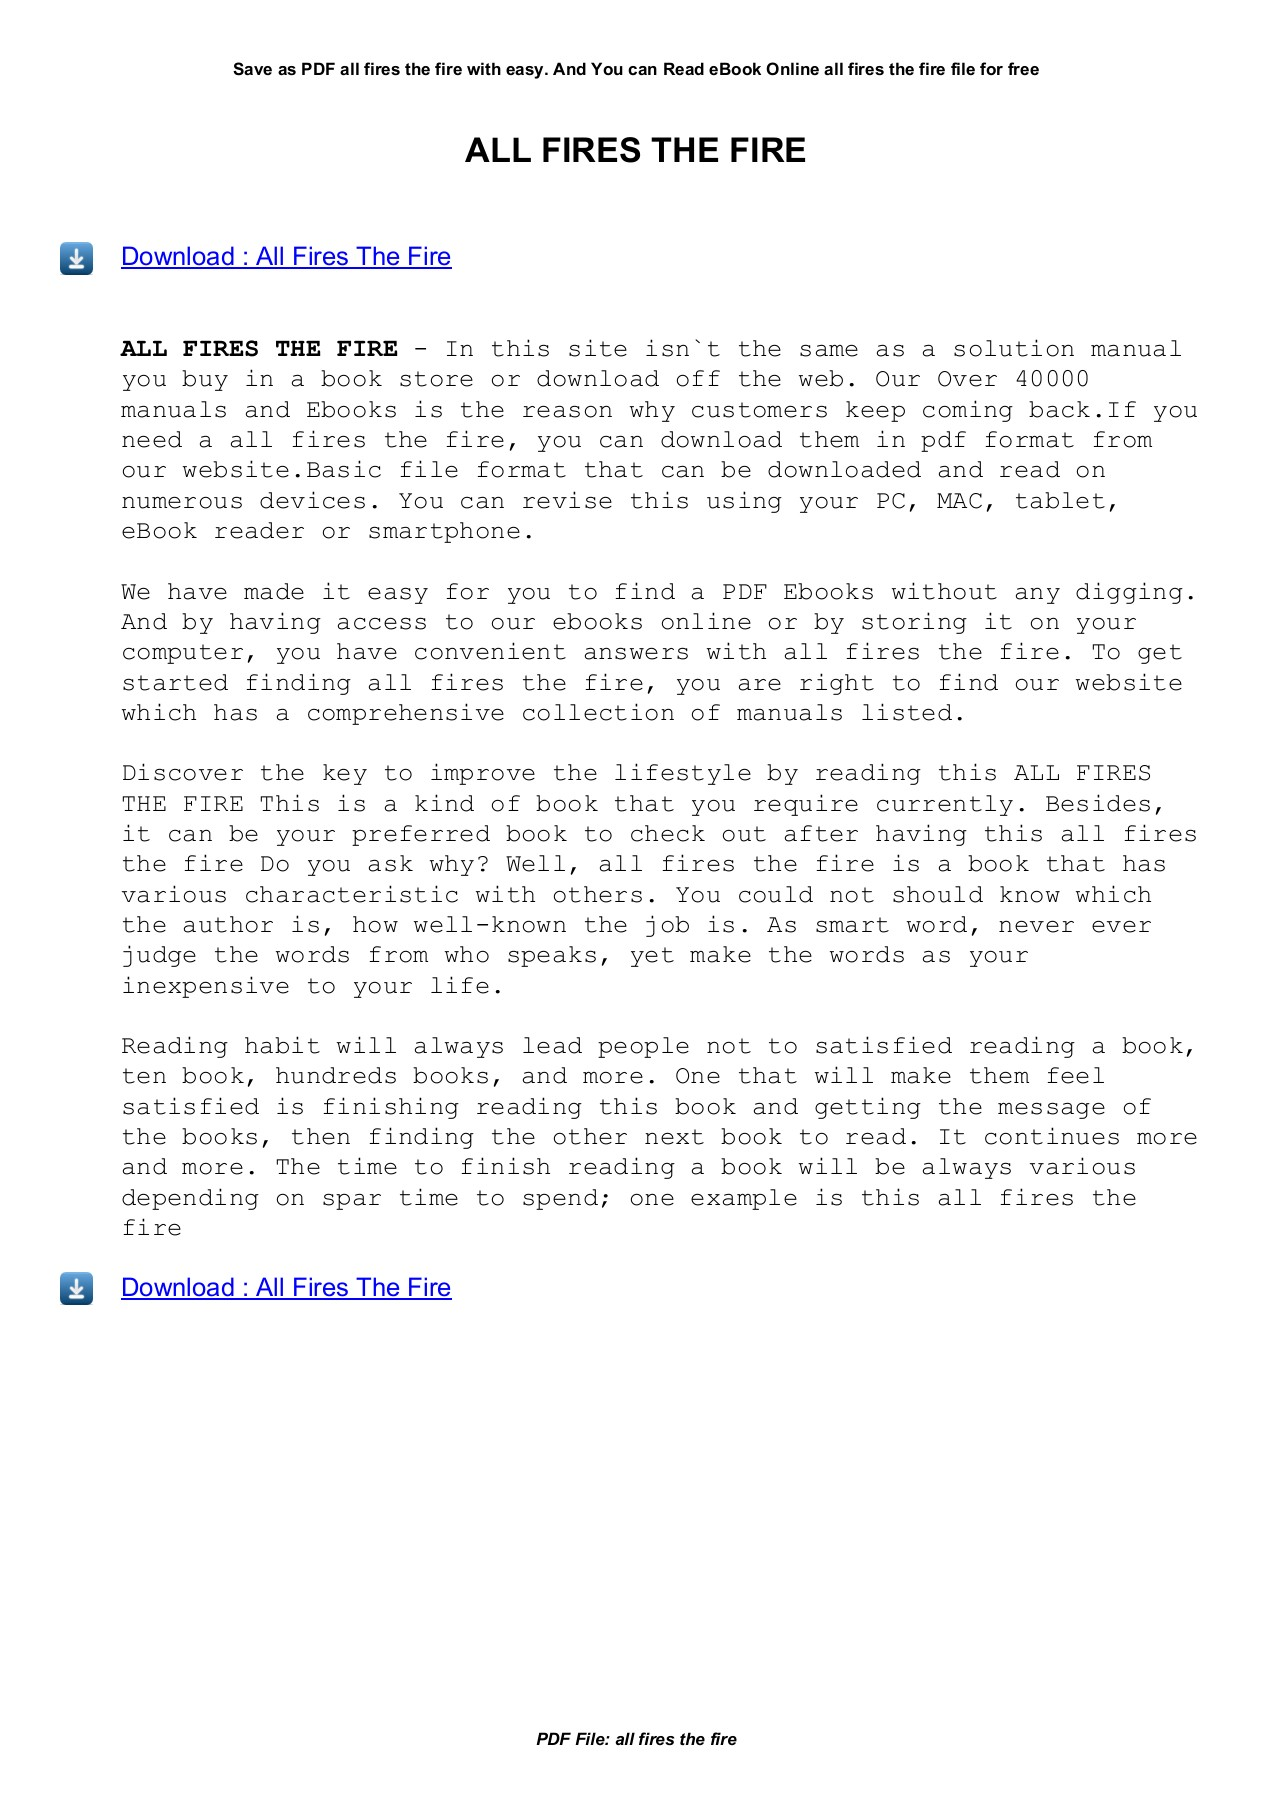 All Fires The Fire Aaacomm Info Pages 1 3 Text Version